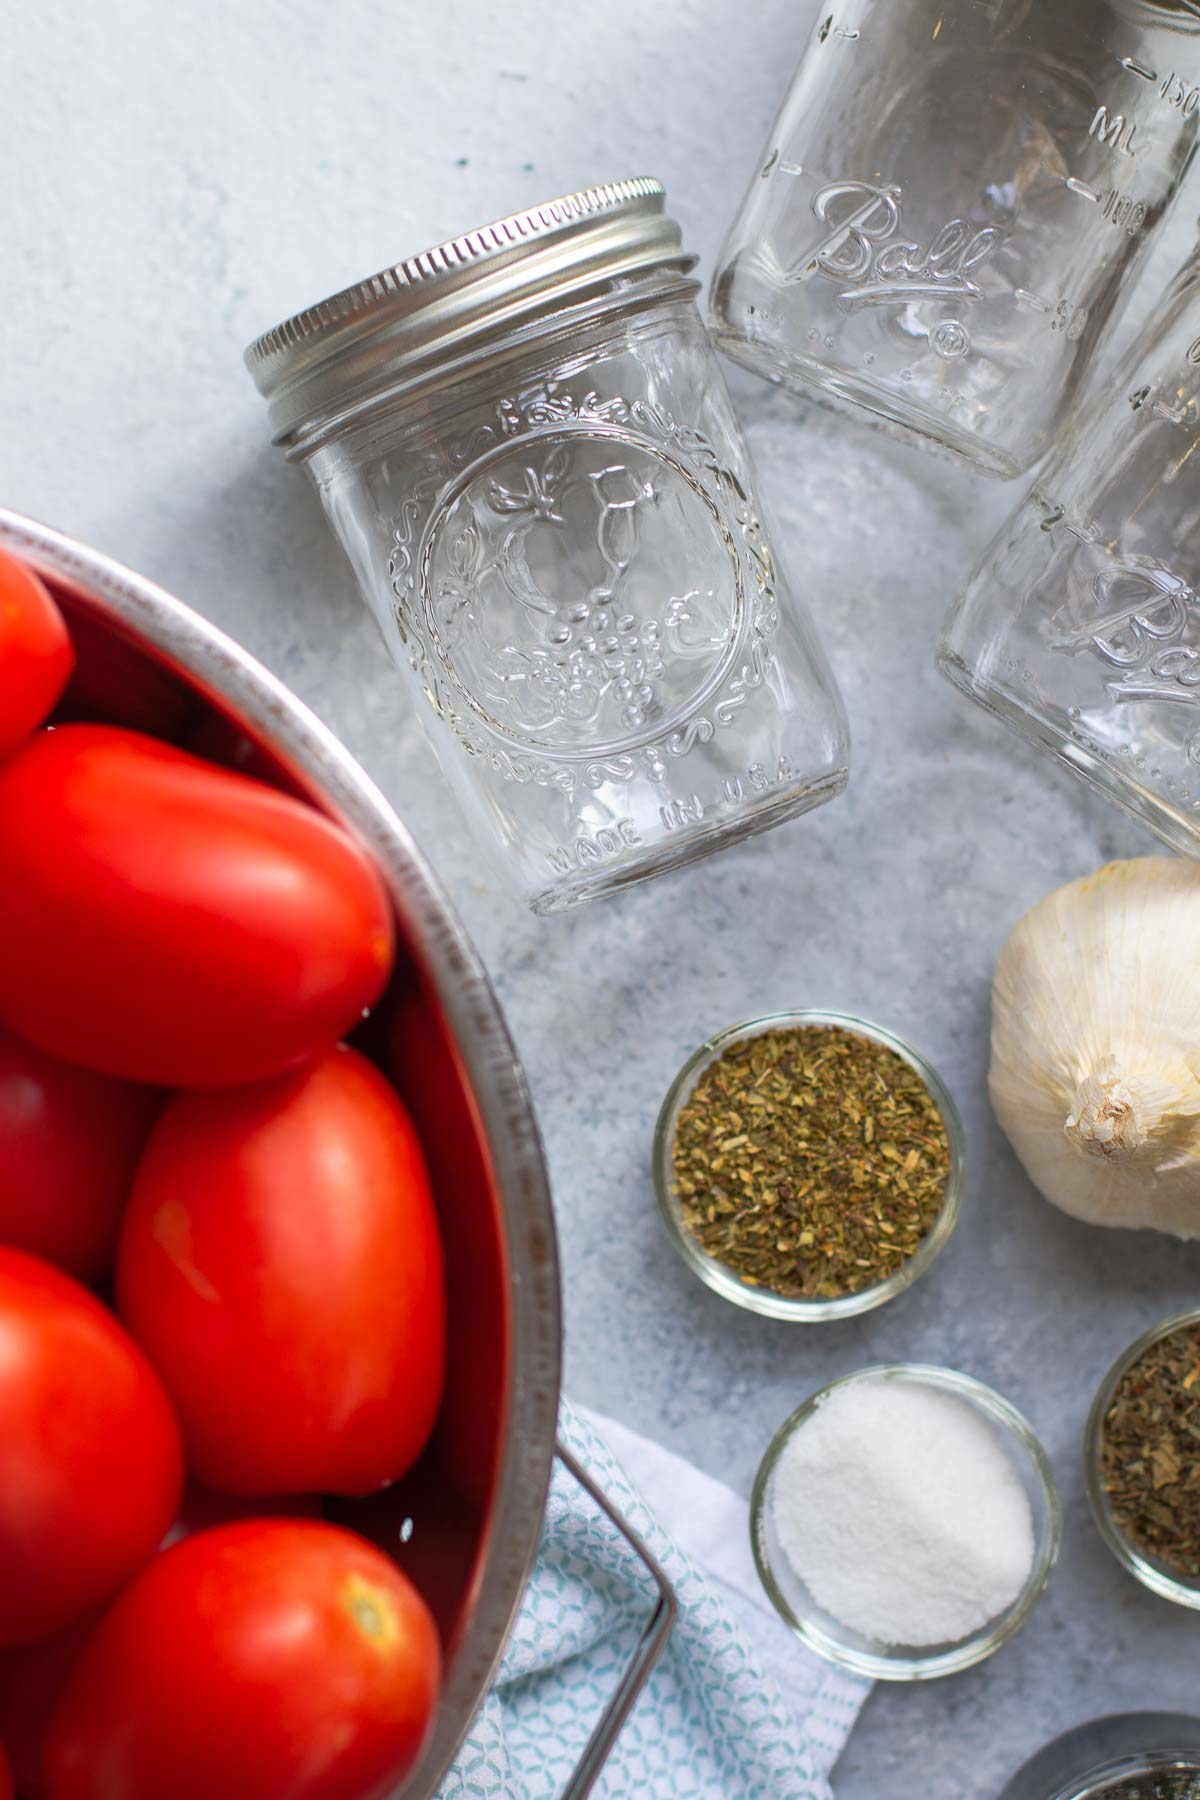 Ingredients in a flatlay - tomatoes, herbs, sugar and half pint jars